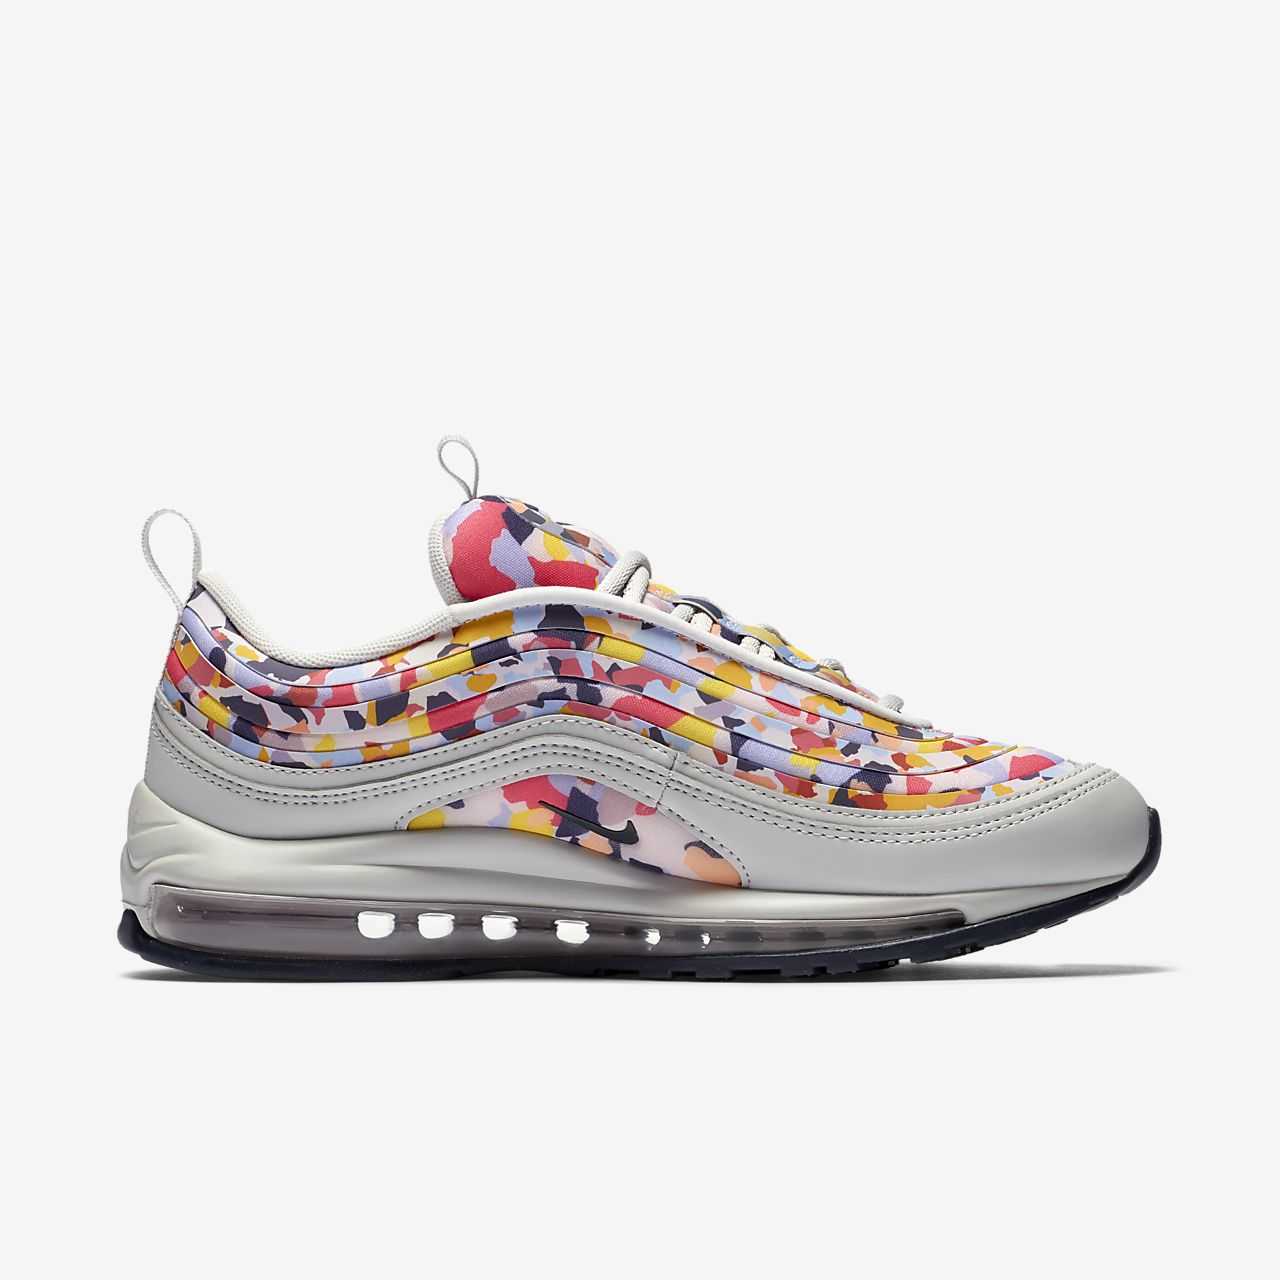 Nike Air Max 97 (Atlantic Blue & Voltage Yellow) END.